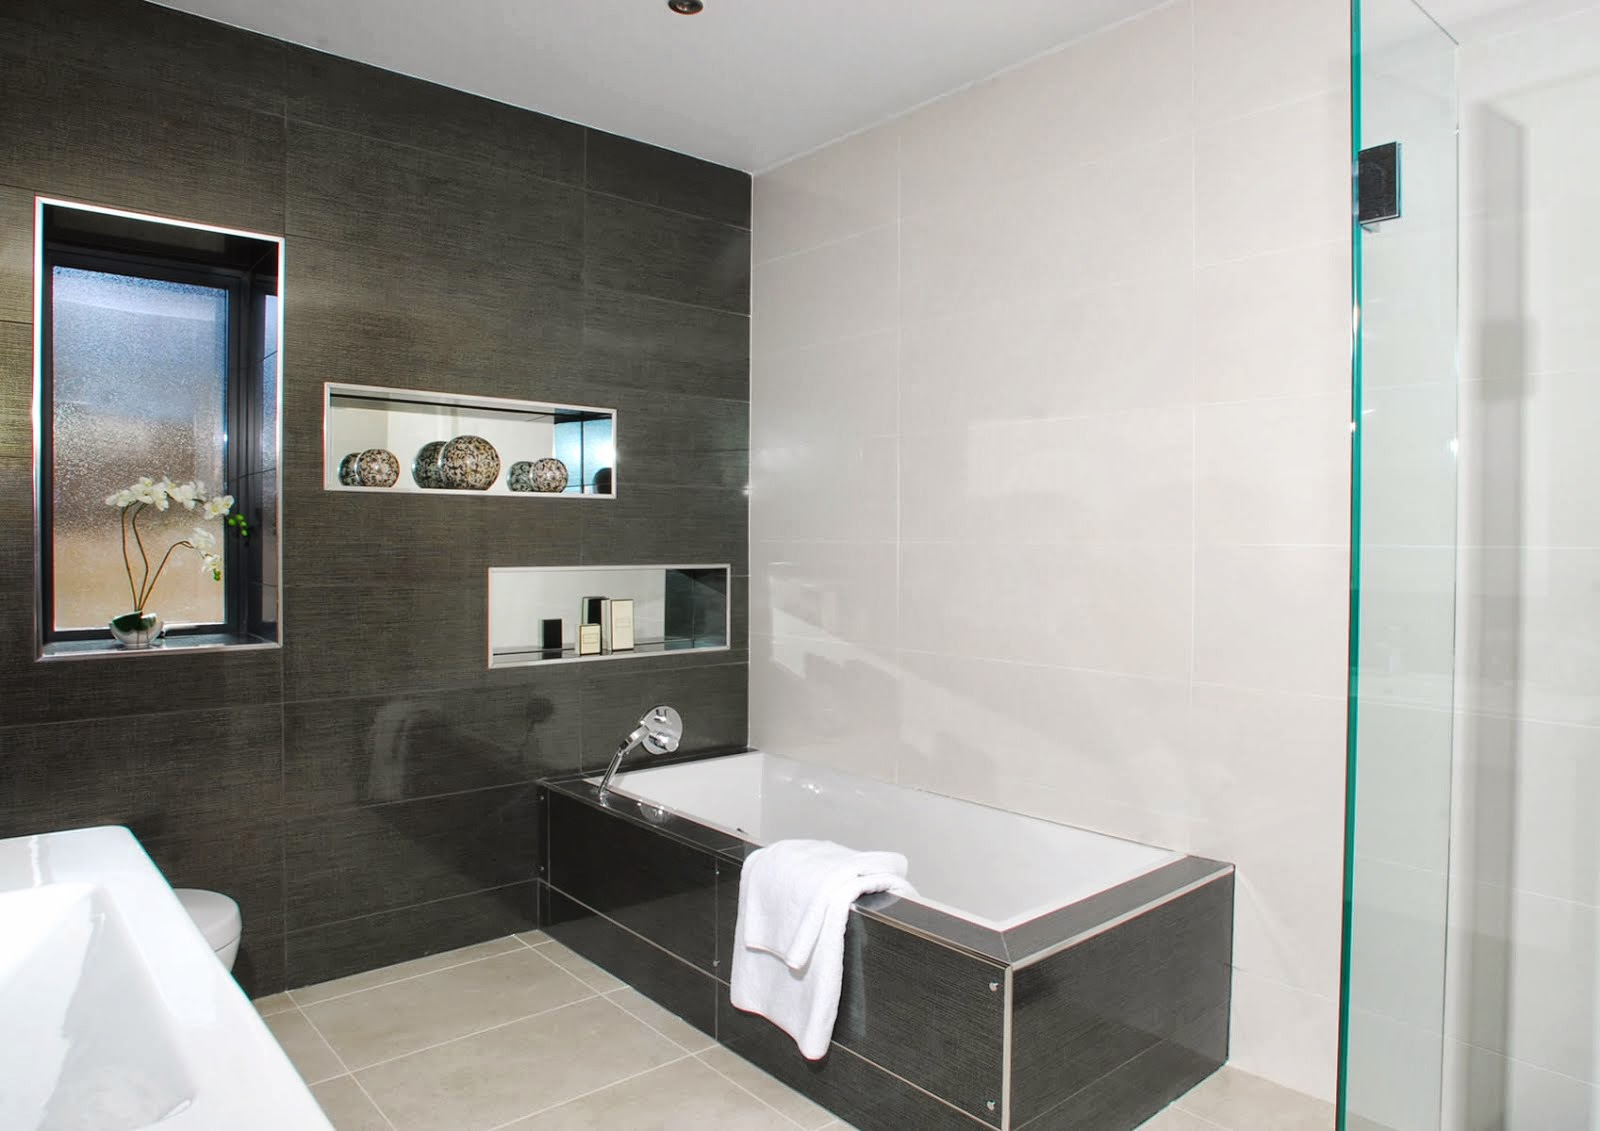 Bathroom design ideas uk for Bathroom layout ideas